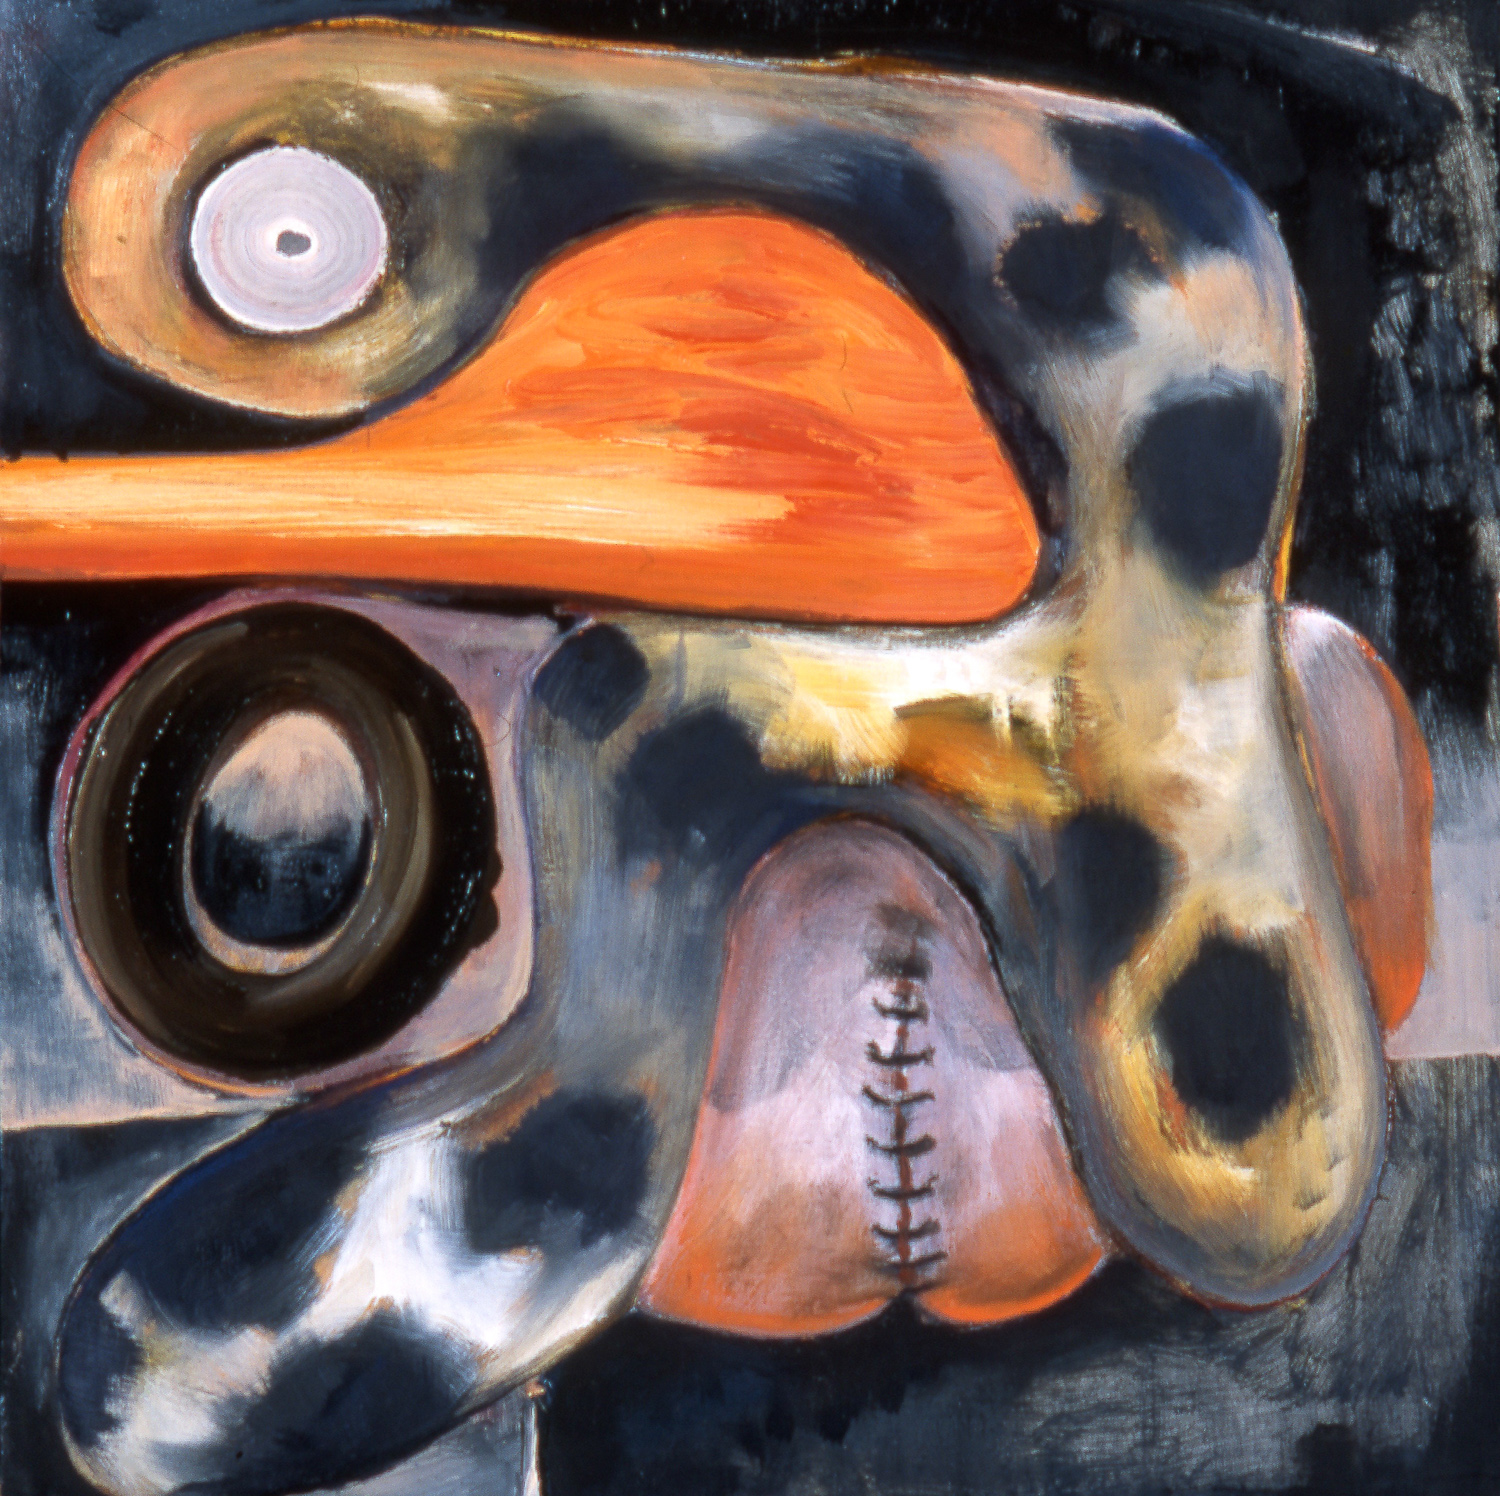 Reflux or tumor? , 2002   Oil on canvas   24 x 24""